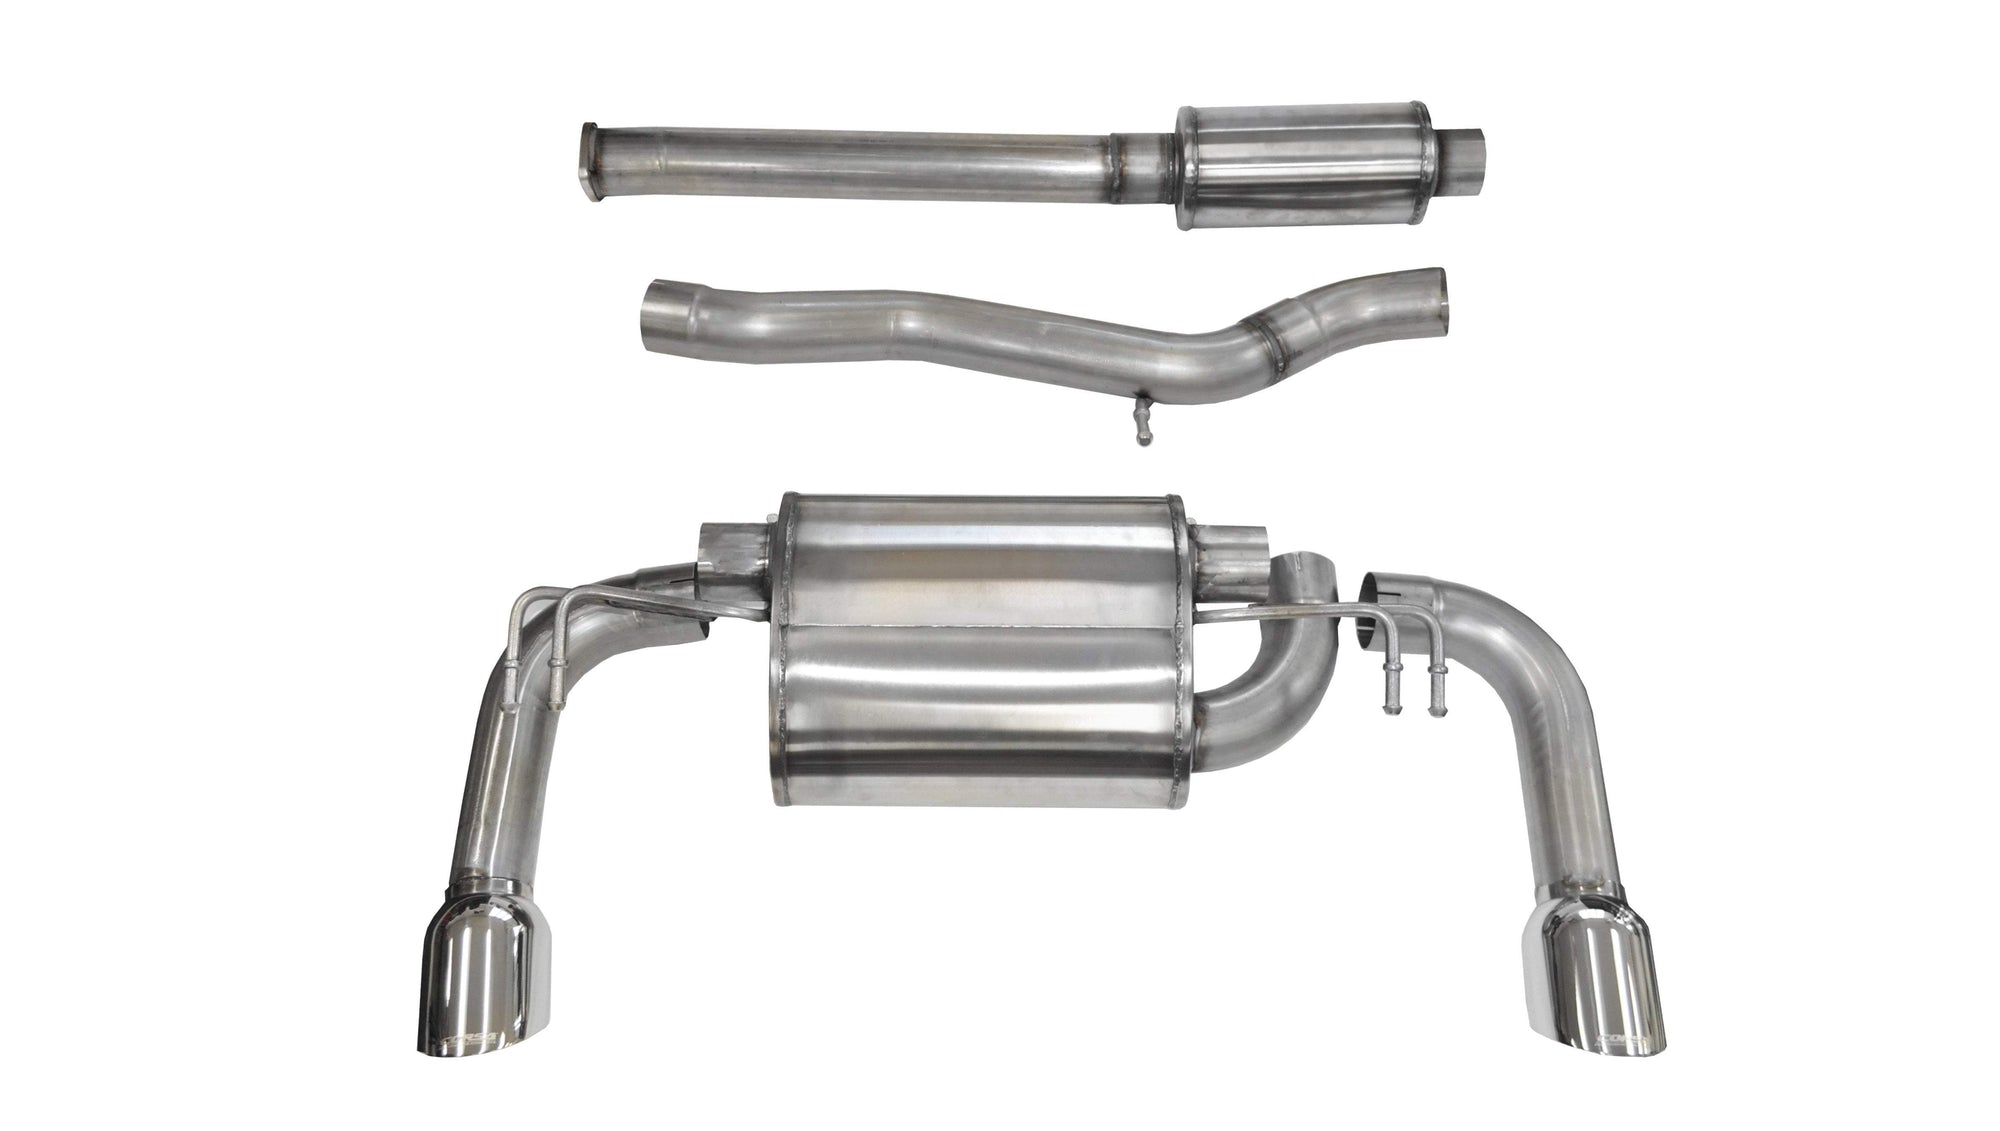 "CORSA PERFORMANCE Cat-Back Exhaust Polished / Sport / Dual Rear - Single 4.5in 3.0"" Dual Rear Exit Cat-Back Exhaust System with 4.5"" Tips  (14858) Sport Sound Level"